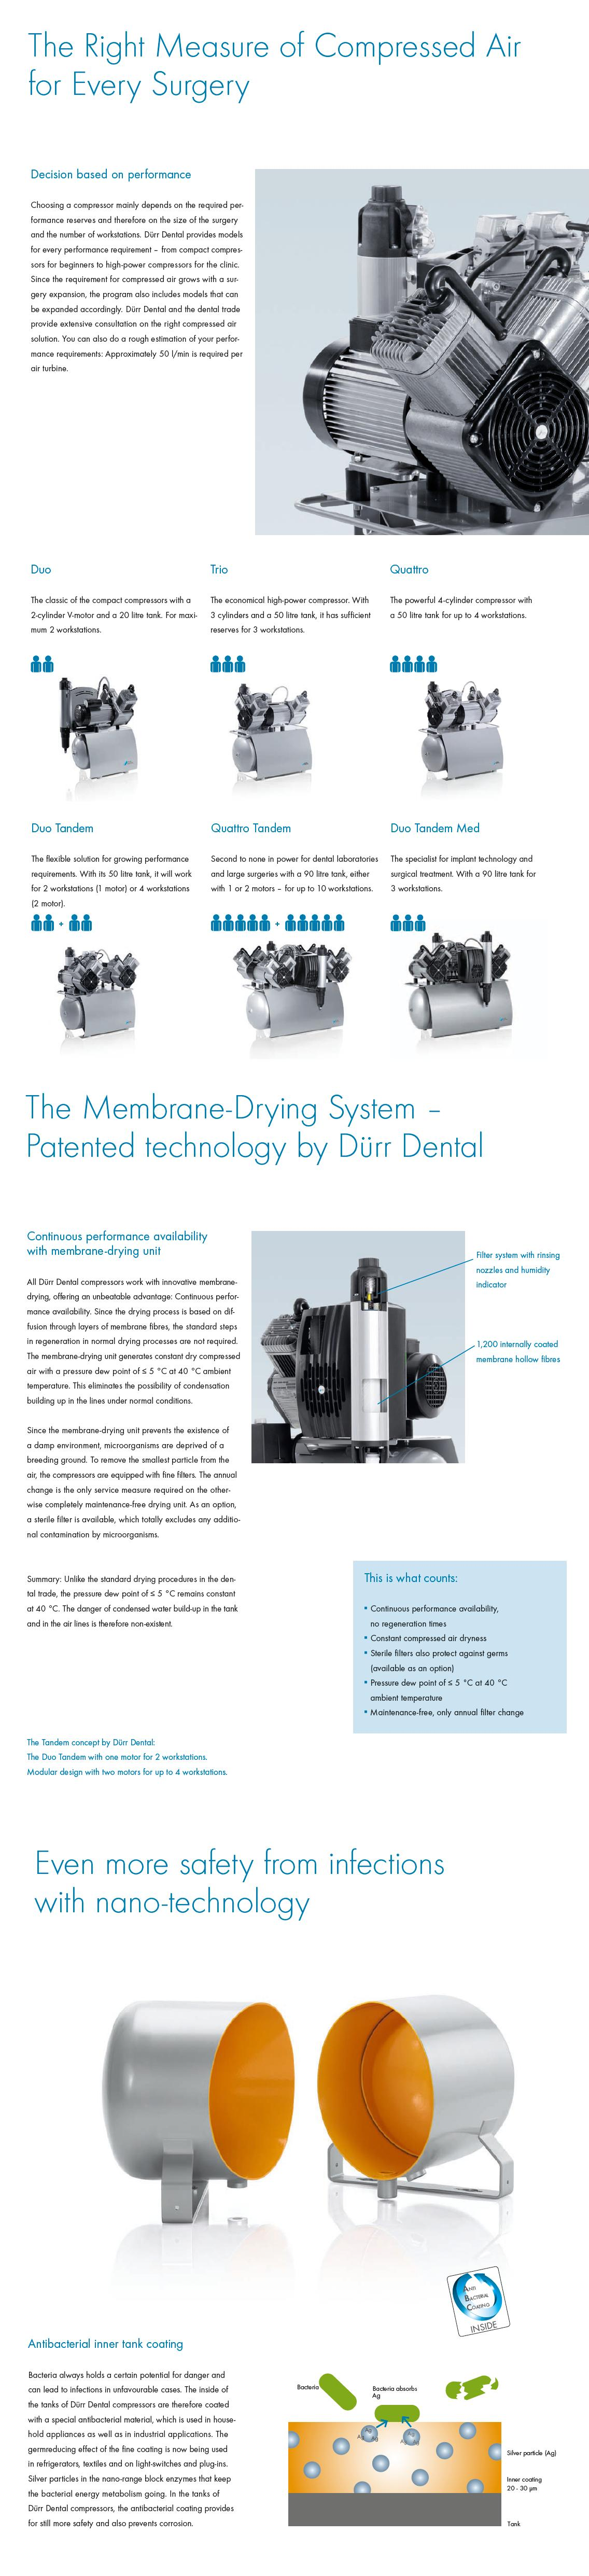 Clean Dental Air Compressors by DURR Dental of Germany ...